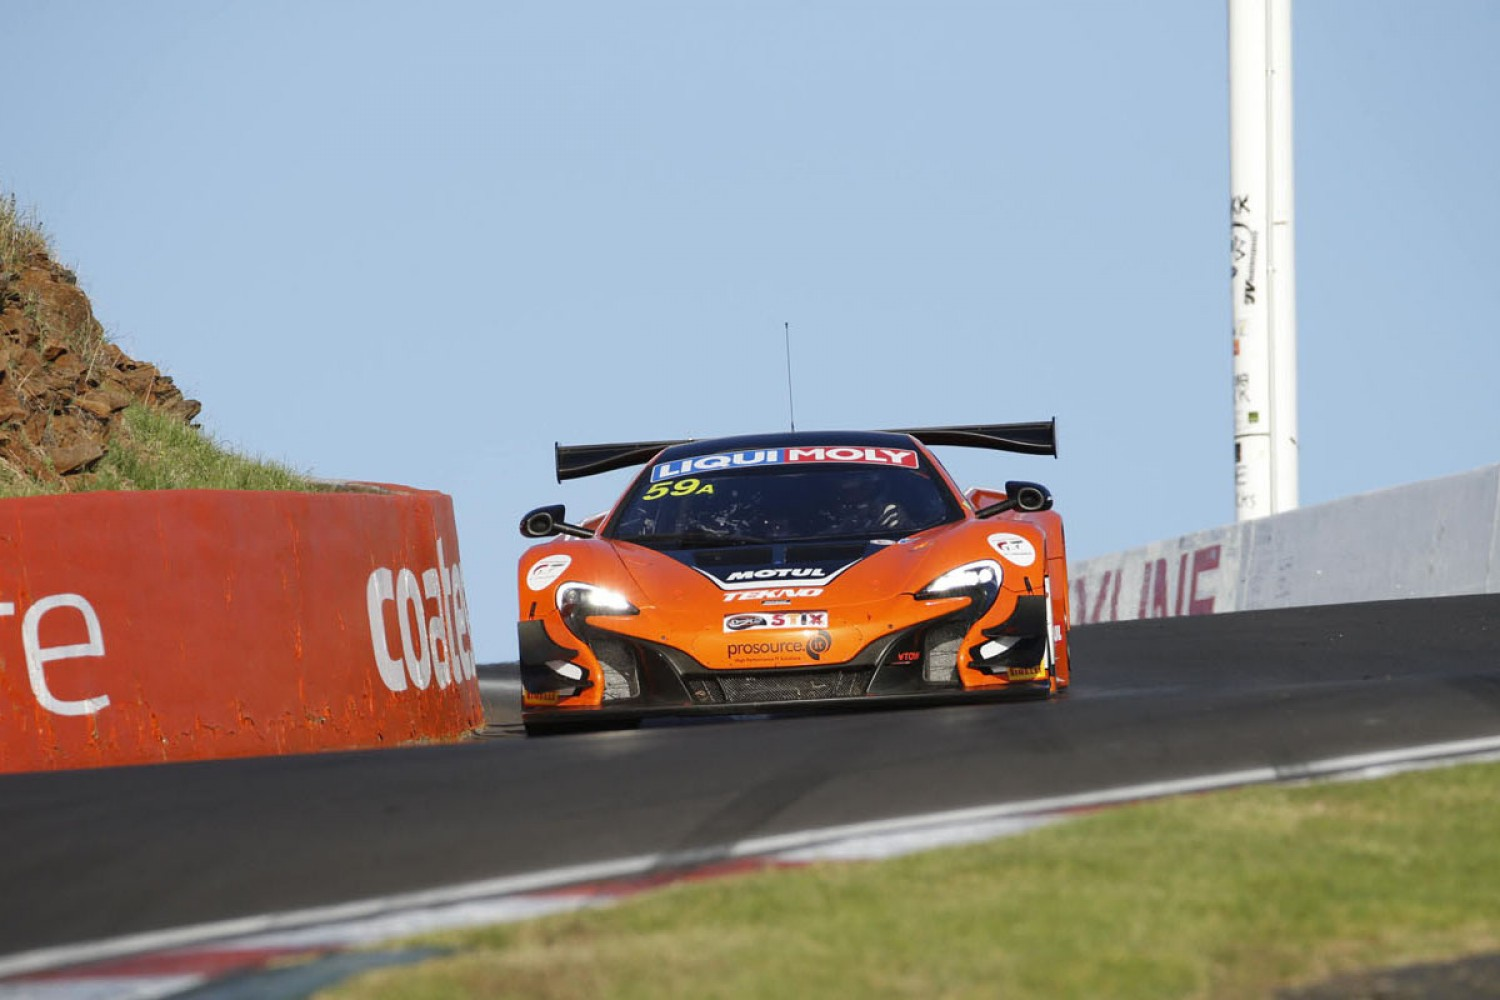 McLaren wins the Liqui-Moly Bathurst 12 Hour and leads the Intercontinental GT Challenge